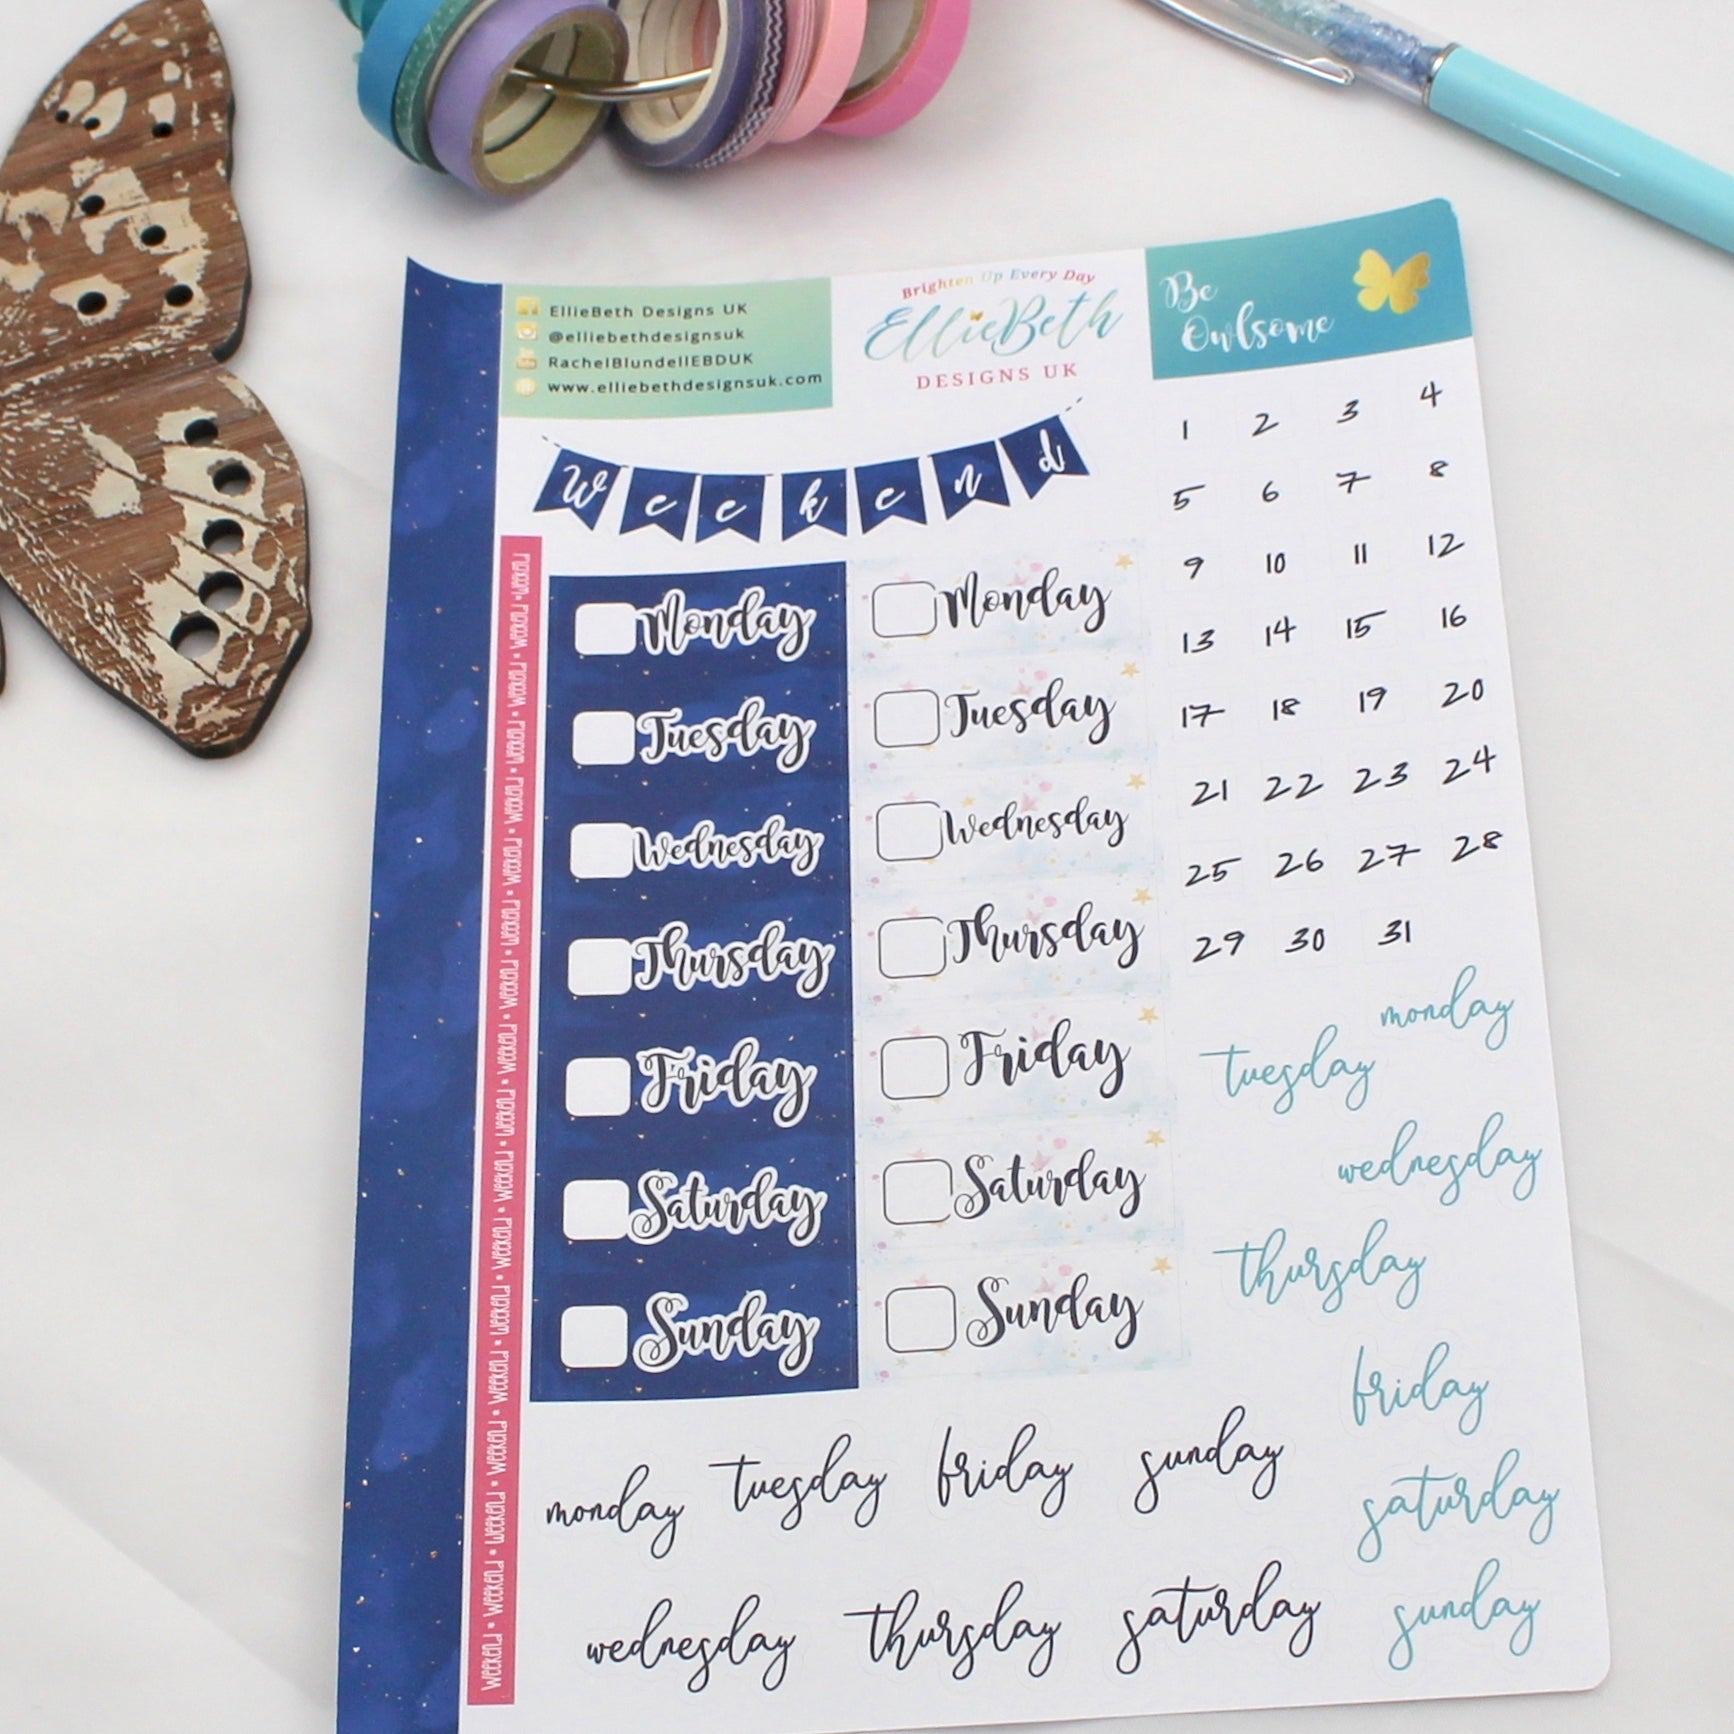 'Be Owlsome' - Days and Dates -  A5 binder ready planner stickers - EllieBeth Designs UK